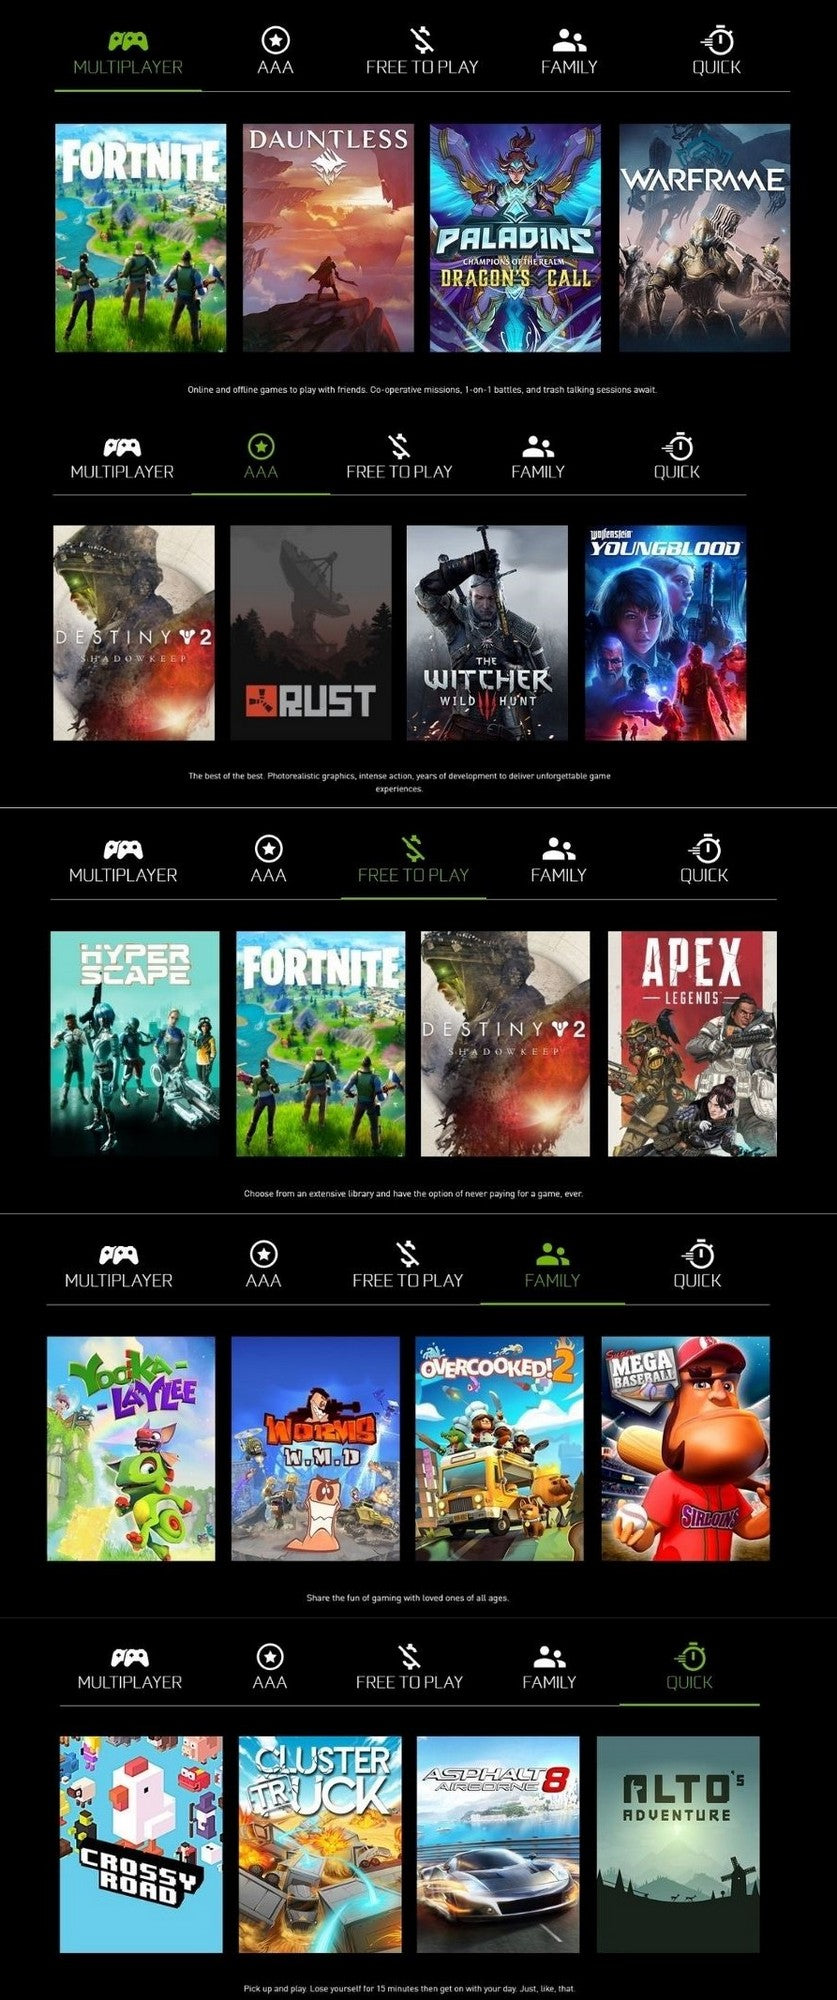 NVIDIA SHIELD Android TV 4K HDR Streaming Media Player; High Performance, Dolby Vision, Google Assistant Built-In, Works with Alexa - gaming